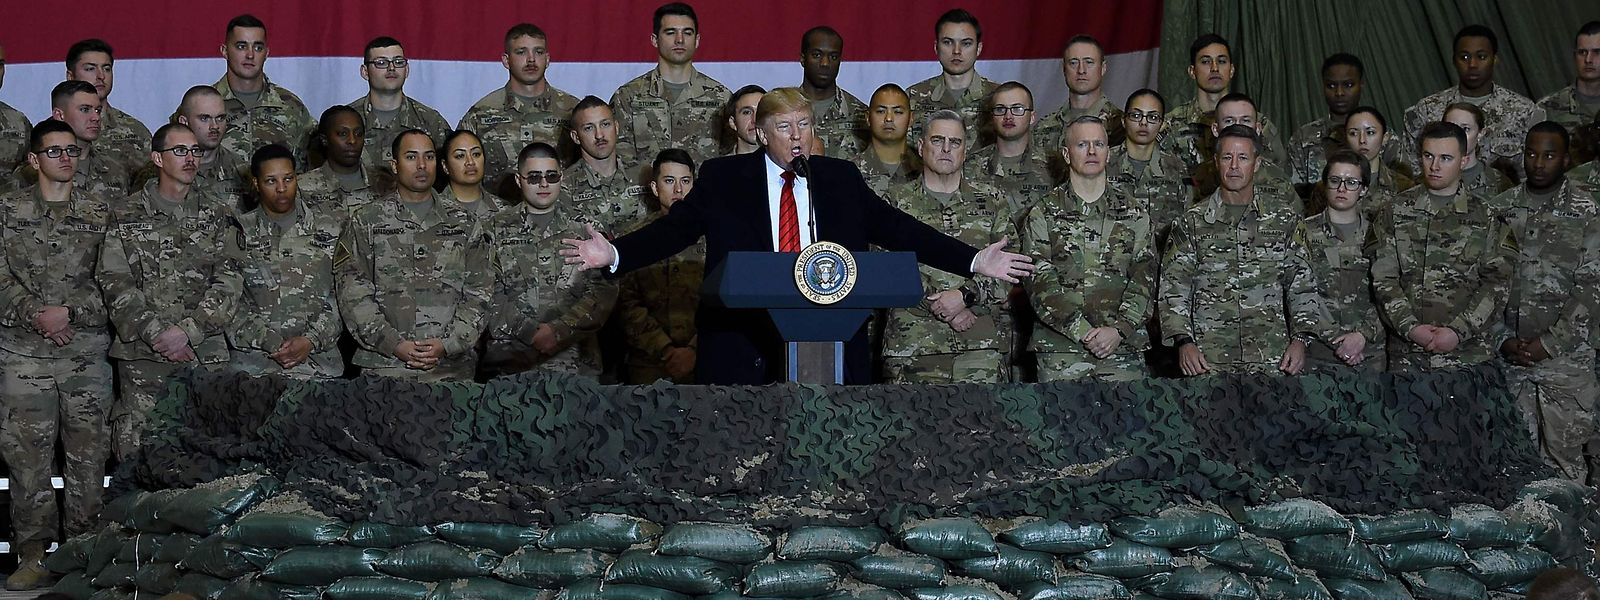 US President Donald Trump speaks to the troops during a surprise Thanksgiving day visit at Bagram Air Field, on November 28, 2019 in Afghanistan. (Photo by Olivier Douliery / AFP)